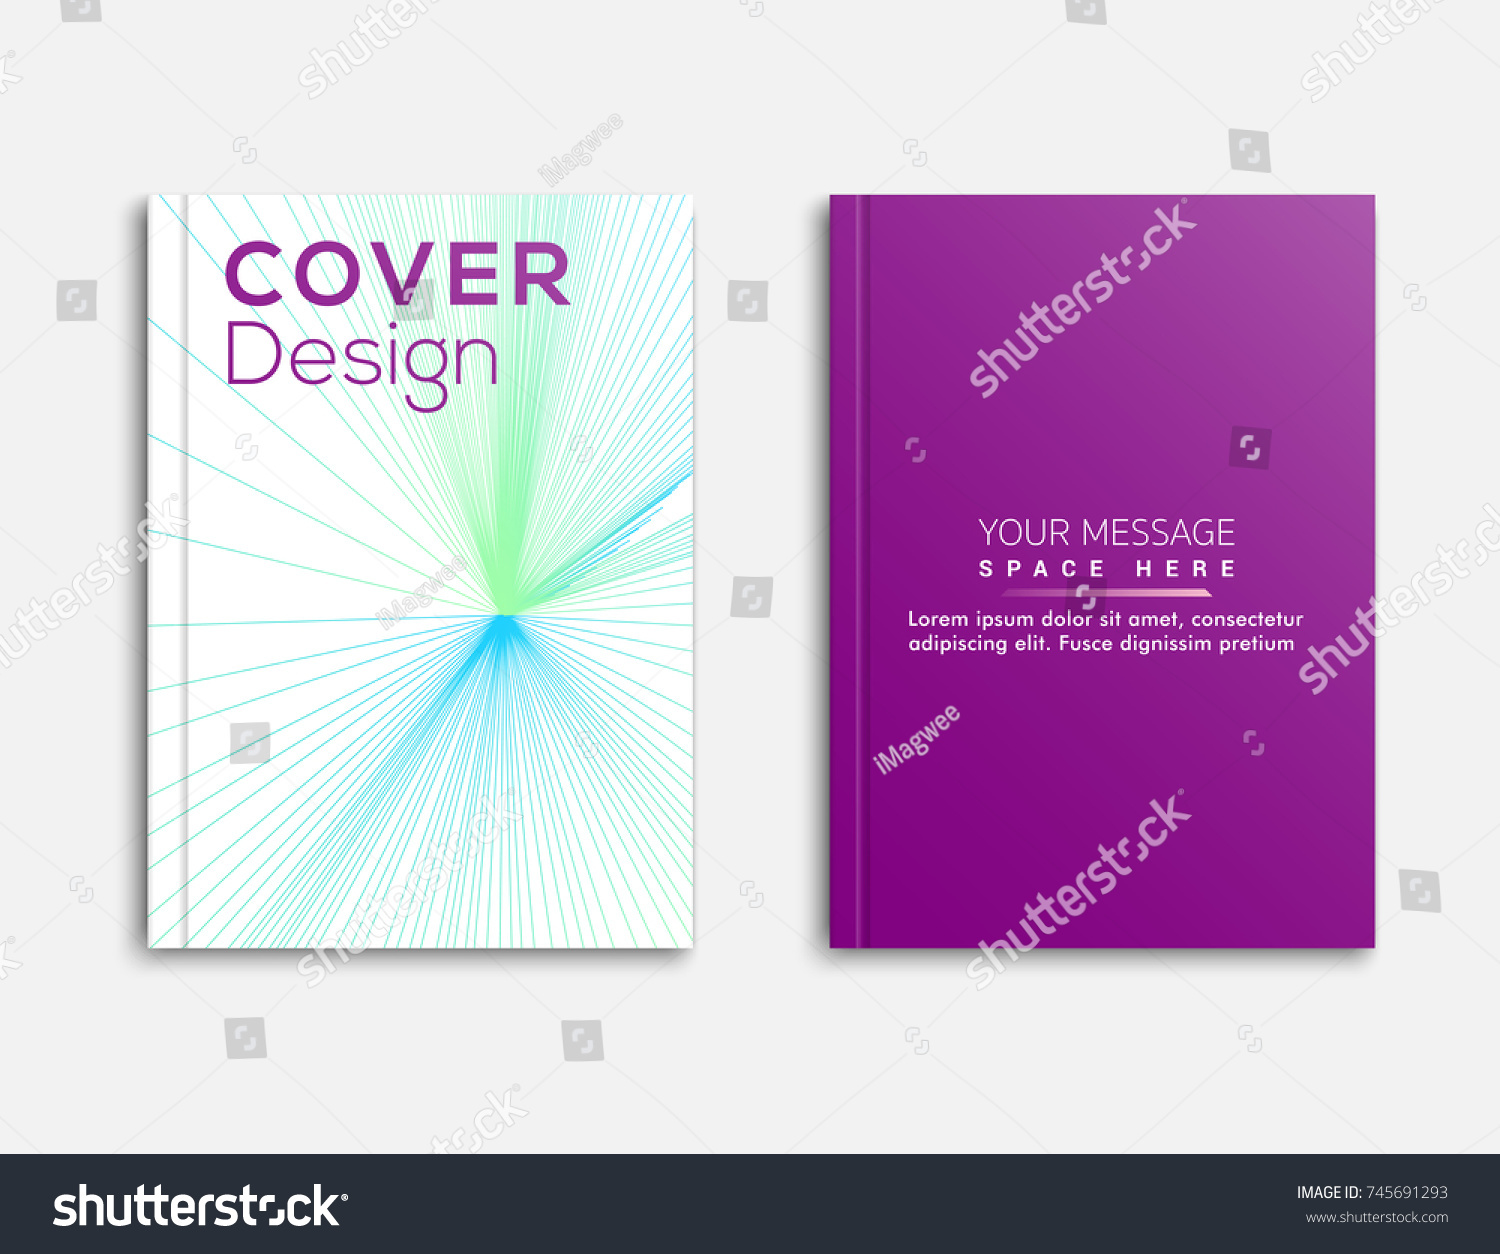 Abstract Design Business Brochure Flyer Cover Stock Vector 745691293 ...